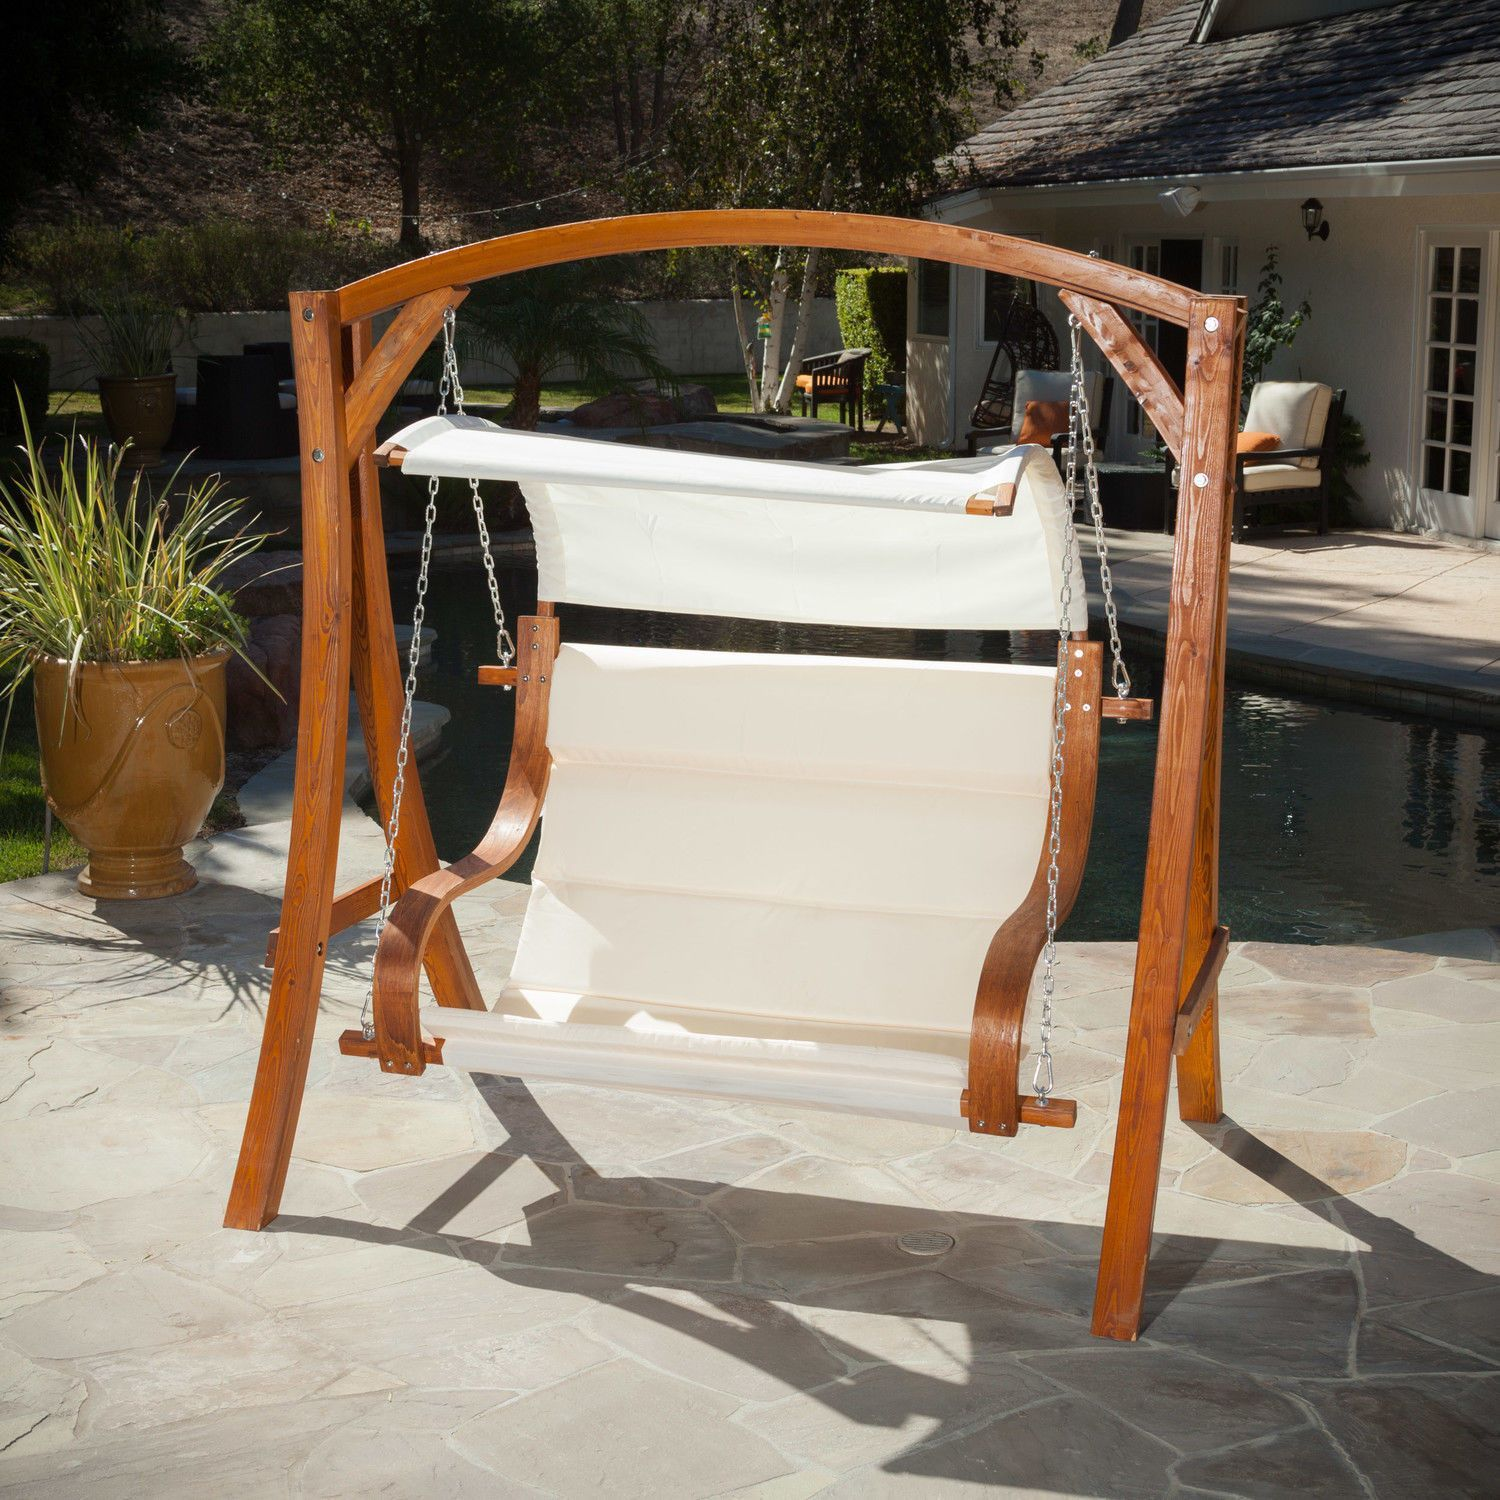 Sensational Hanging Wood Bench Love Seat Chair Swing Patio Outdoor Alphanode Cool Chair Designs And Ideas Alphanodeonline